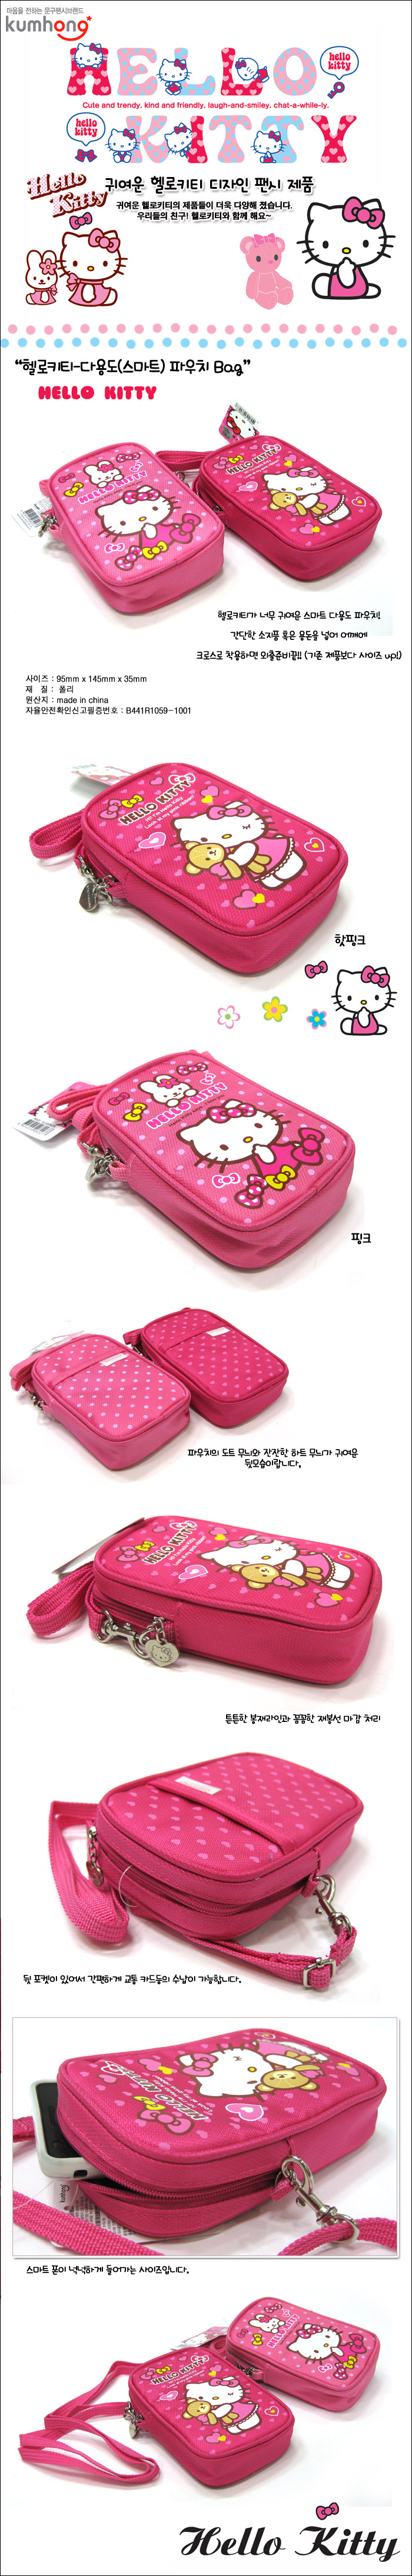 kumhong Hello Kitty Smart Pouch